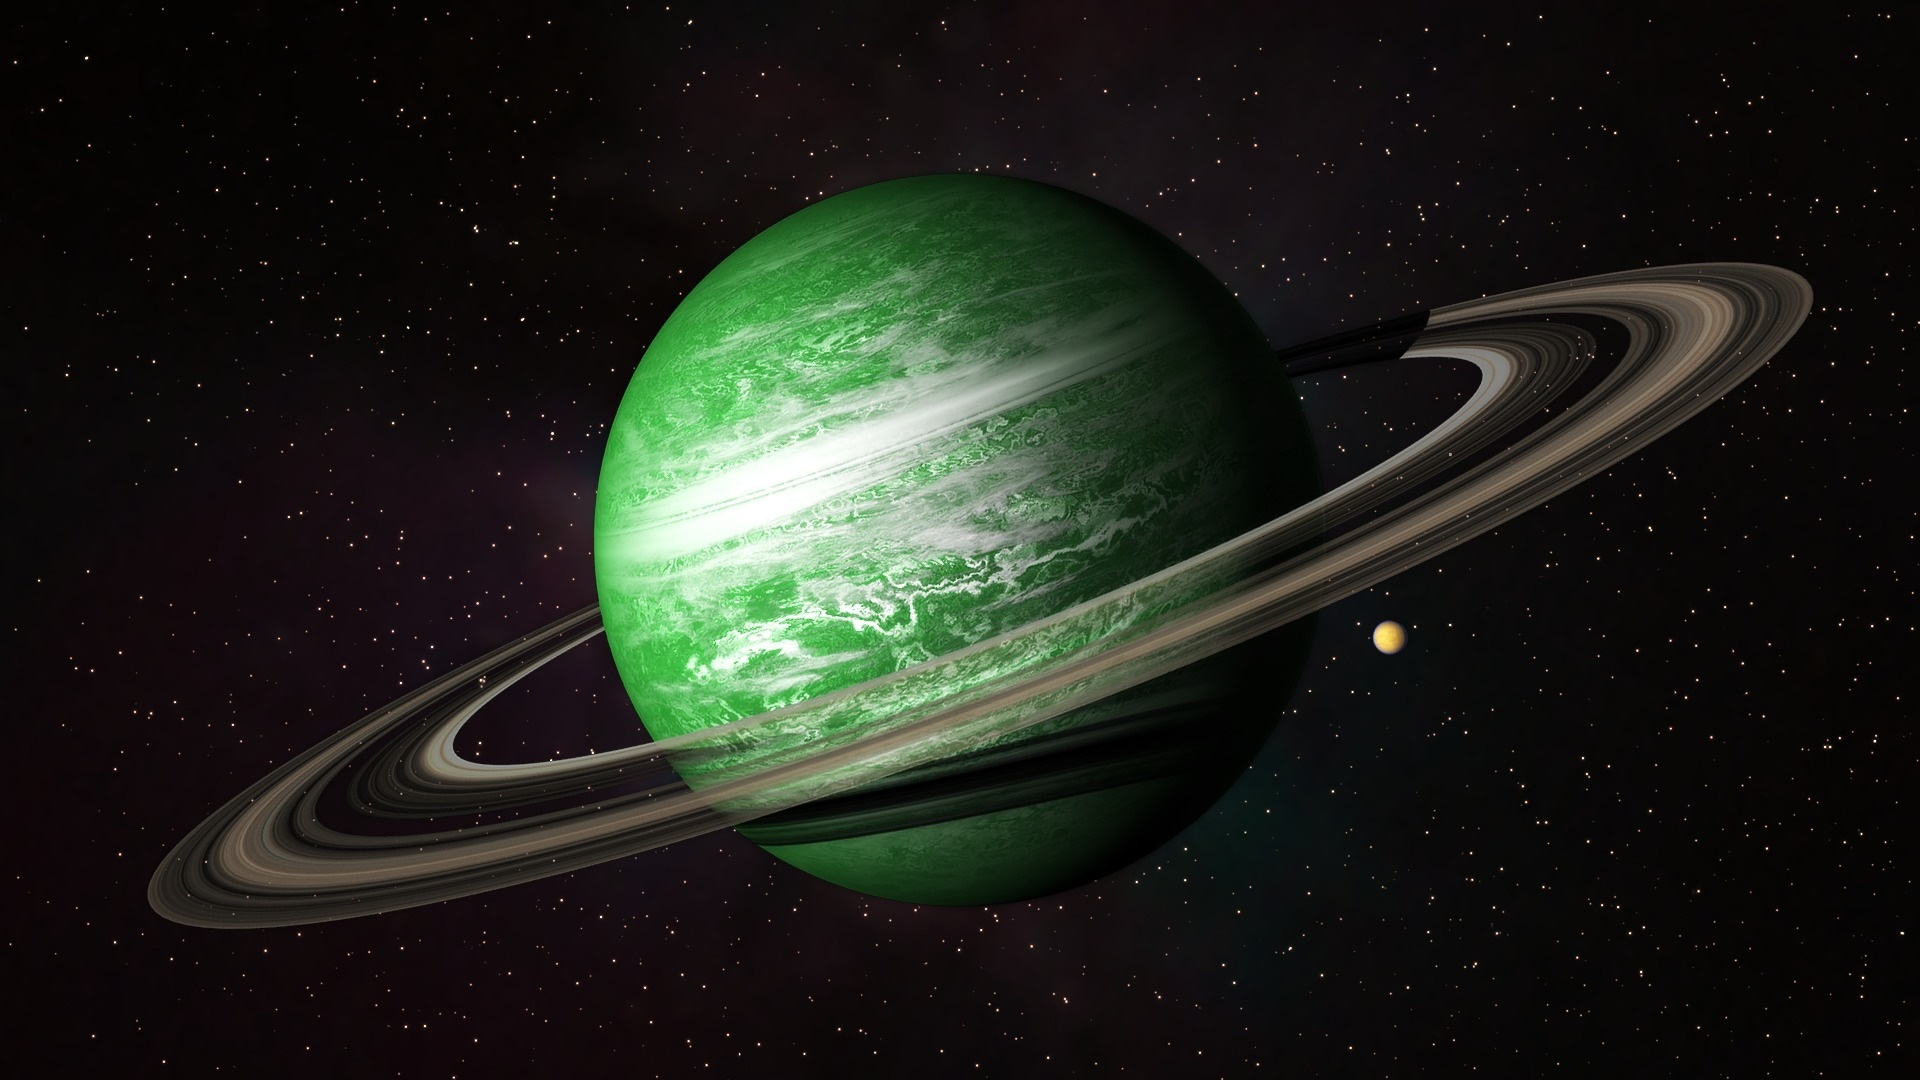 wallpaper green planet, belt, universe 1920x1080 full hd picture, image